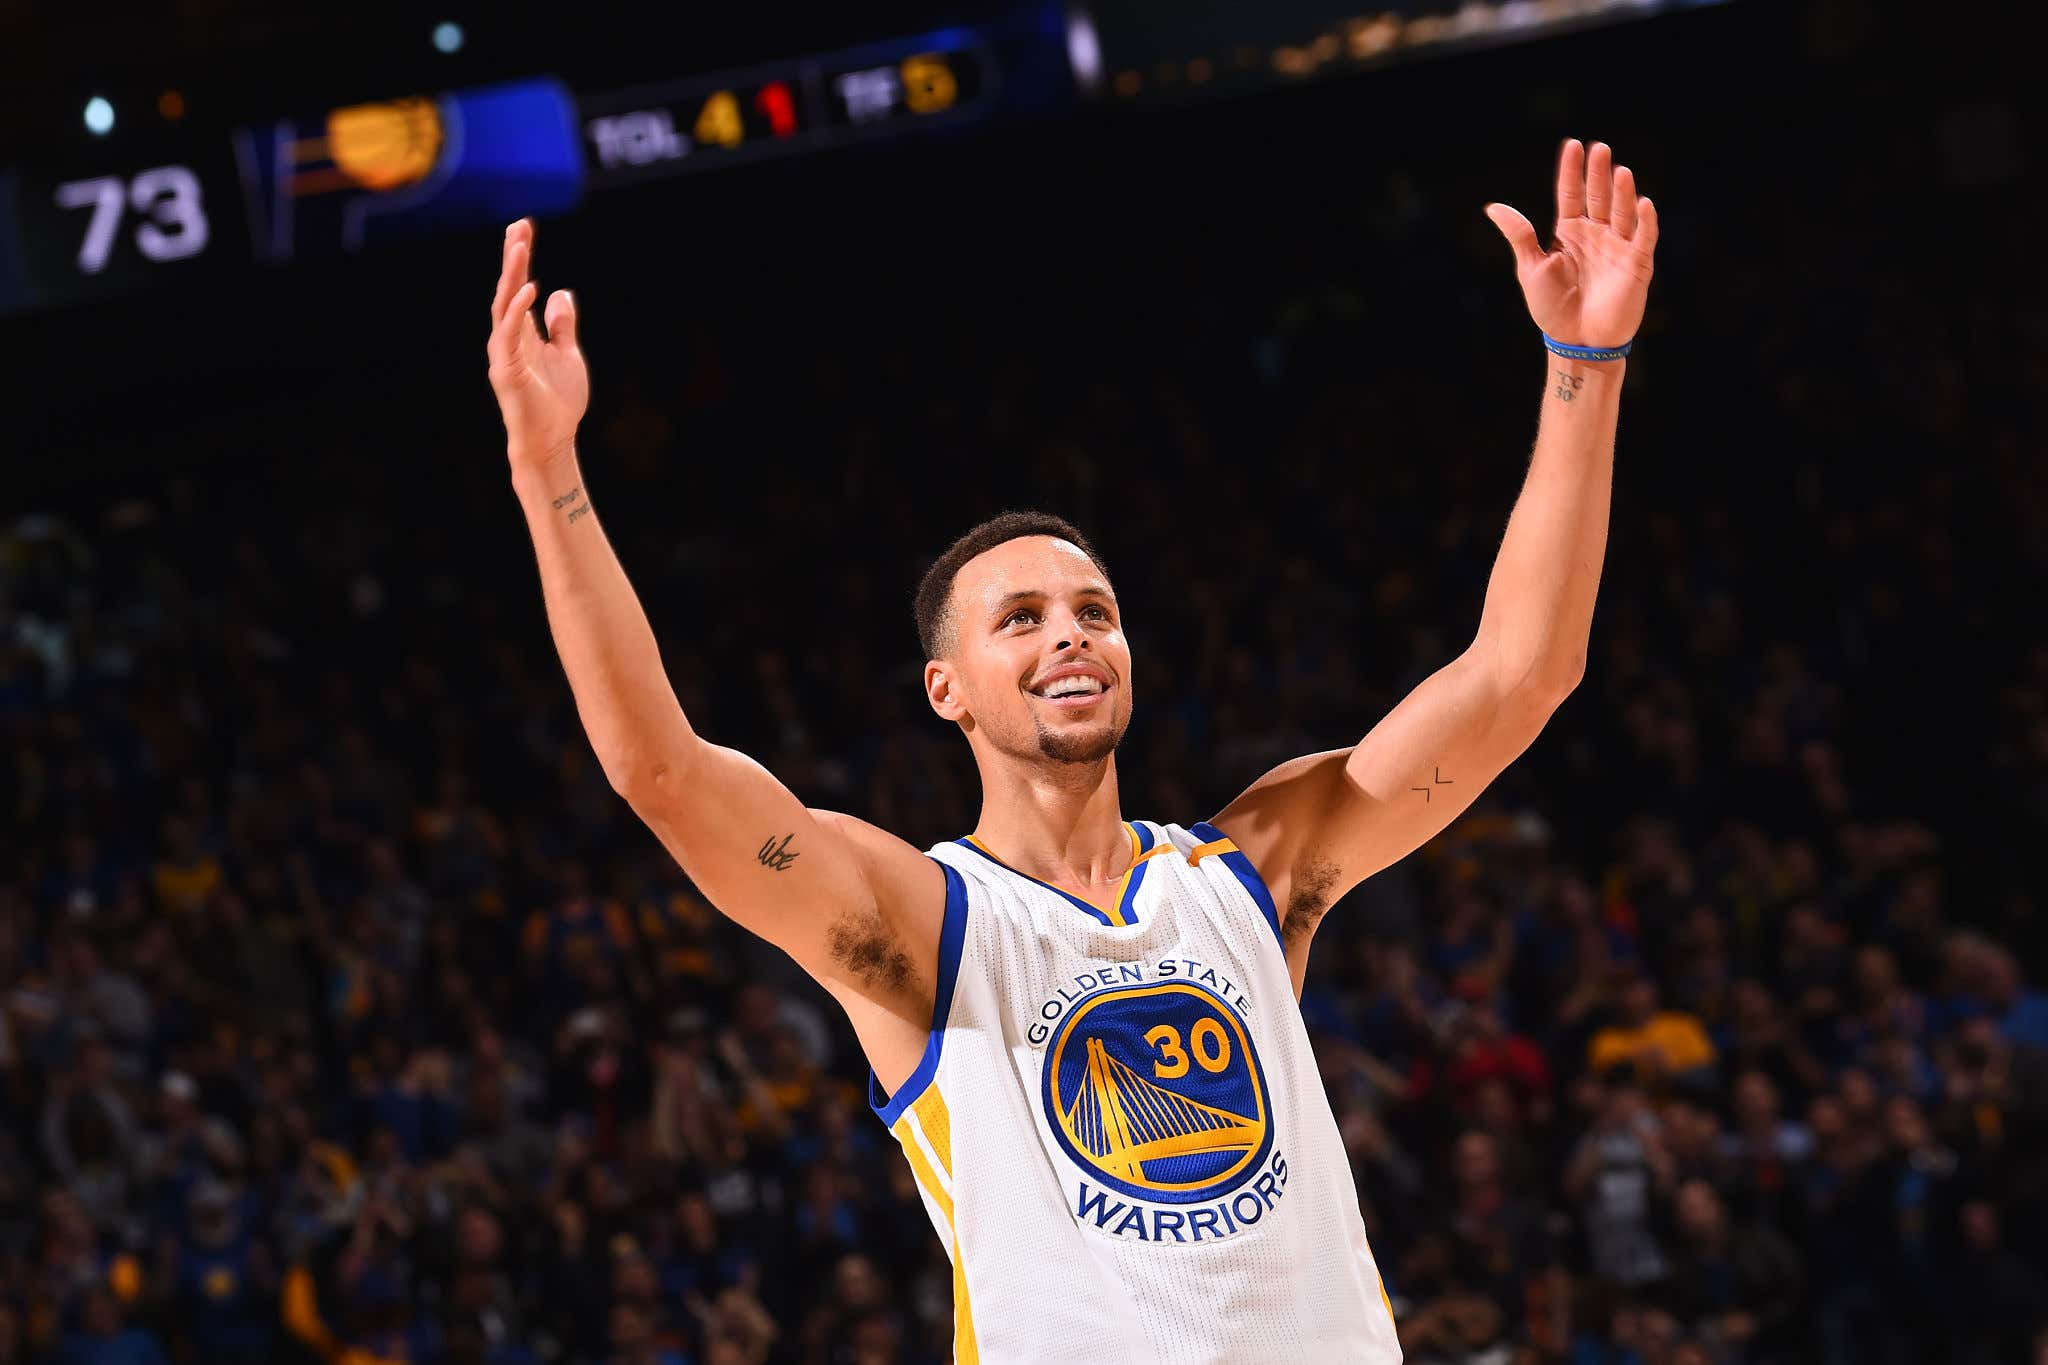 OAKLAND, CA - DECEMBER 5:  Stephen Curry #30 of the Golden State Warriors smiles and gets the crowd into the game against the Indiana Pacers on December 5, 2016 at ORACLE Arena in Oakland, California. NOTE TO USER: User expressly acknowledges and agrees that, by downloading and or using this photograph, user is consenting to the terms and conditions of Getty Images License Agreement. Mandatory Copyright Notice: Copyright 2016 NBAE (Photo by Noah Graham/NBAE via Getty Images)